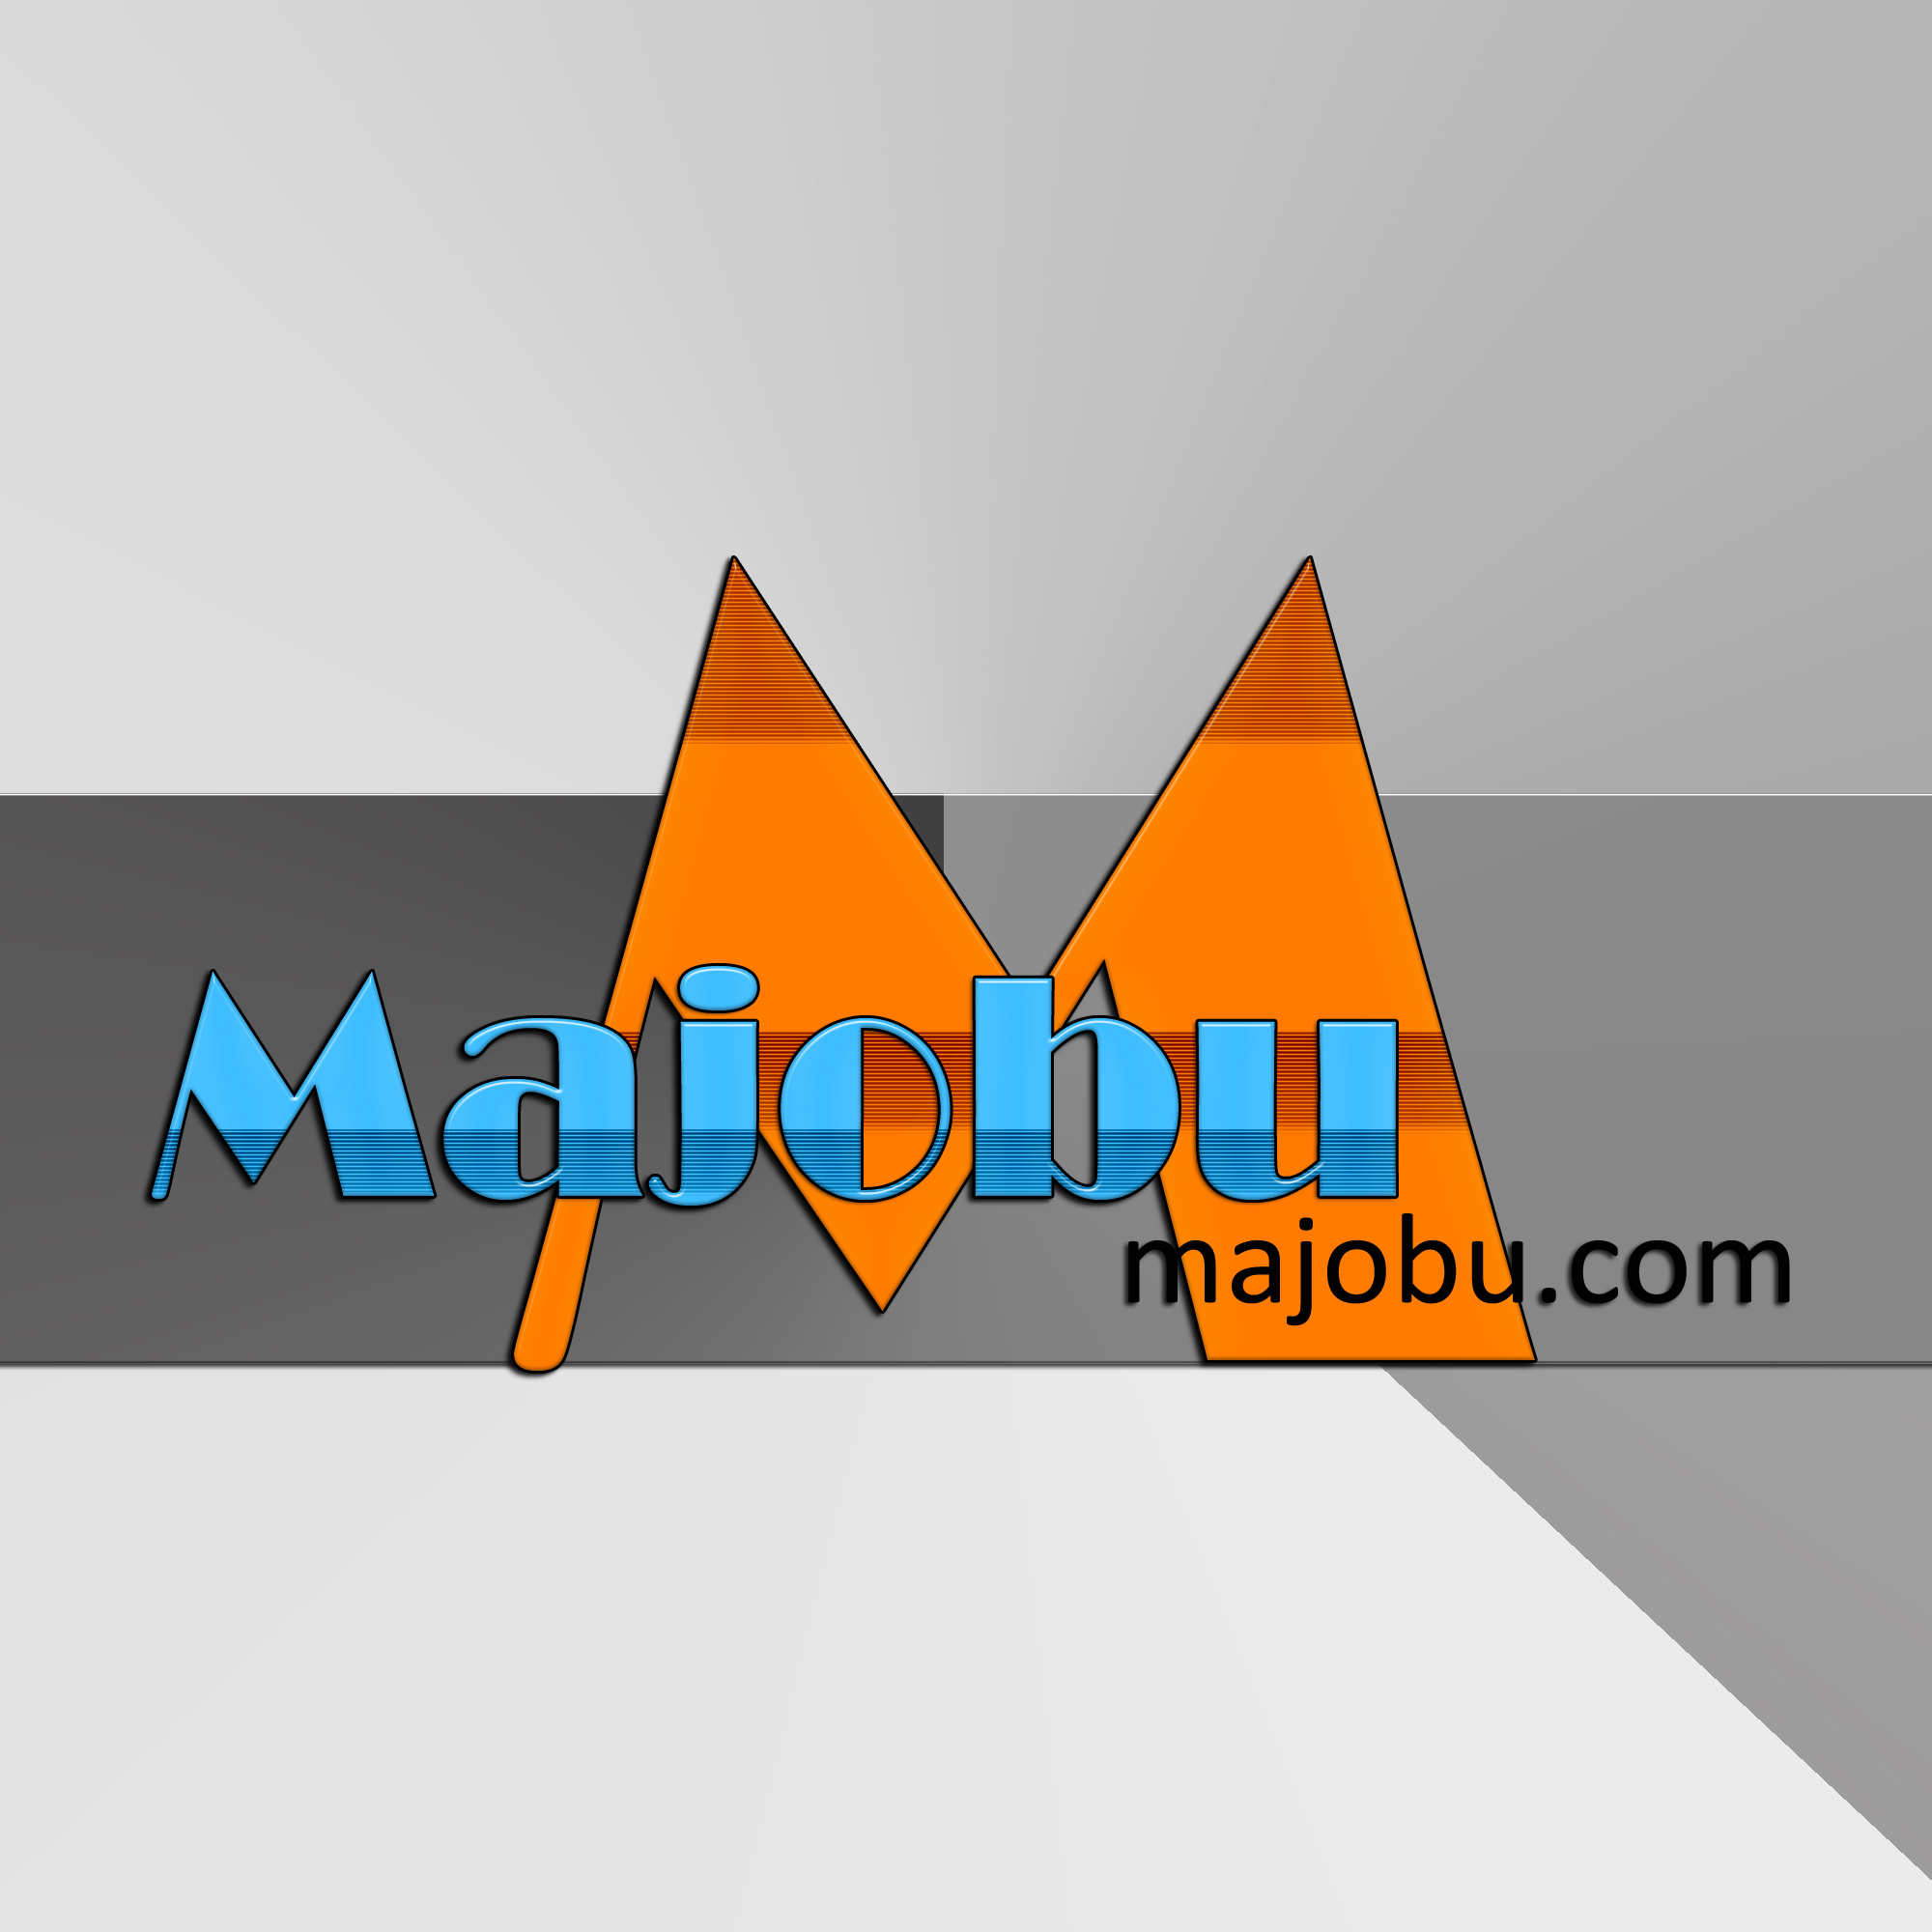 Logo Design by MITUCA ANDREI - Entry No. 145 in the Logo Design Contest Inspiring Logo Design for Majobu.